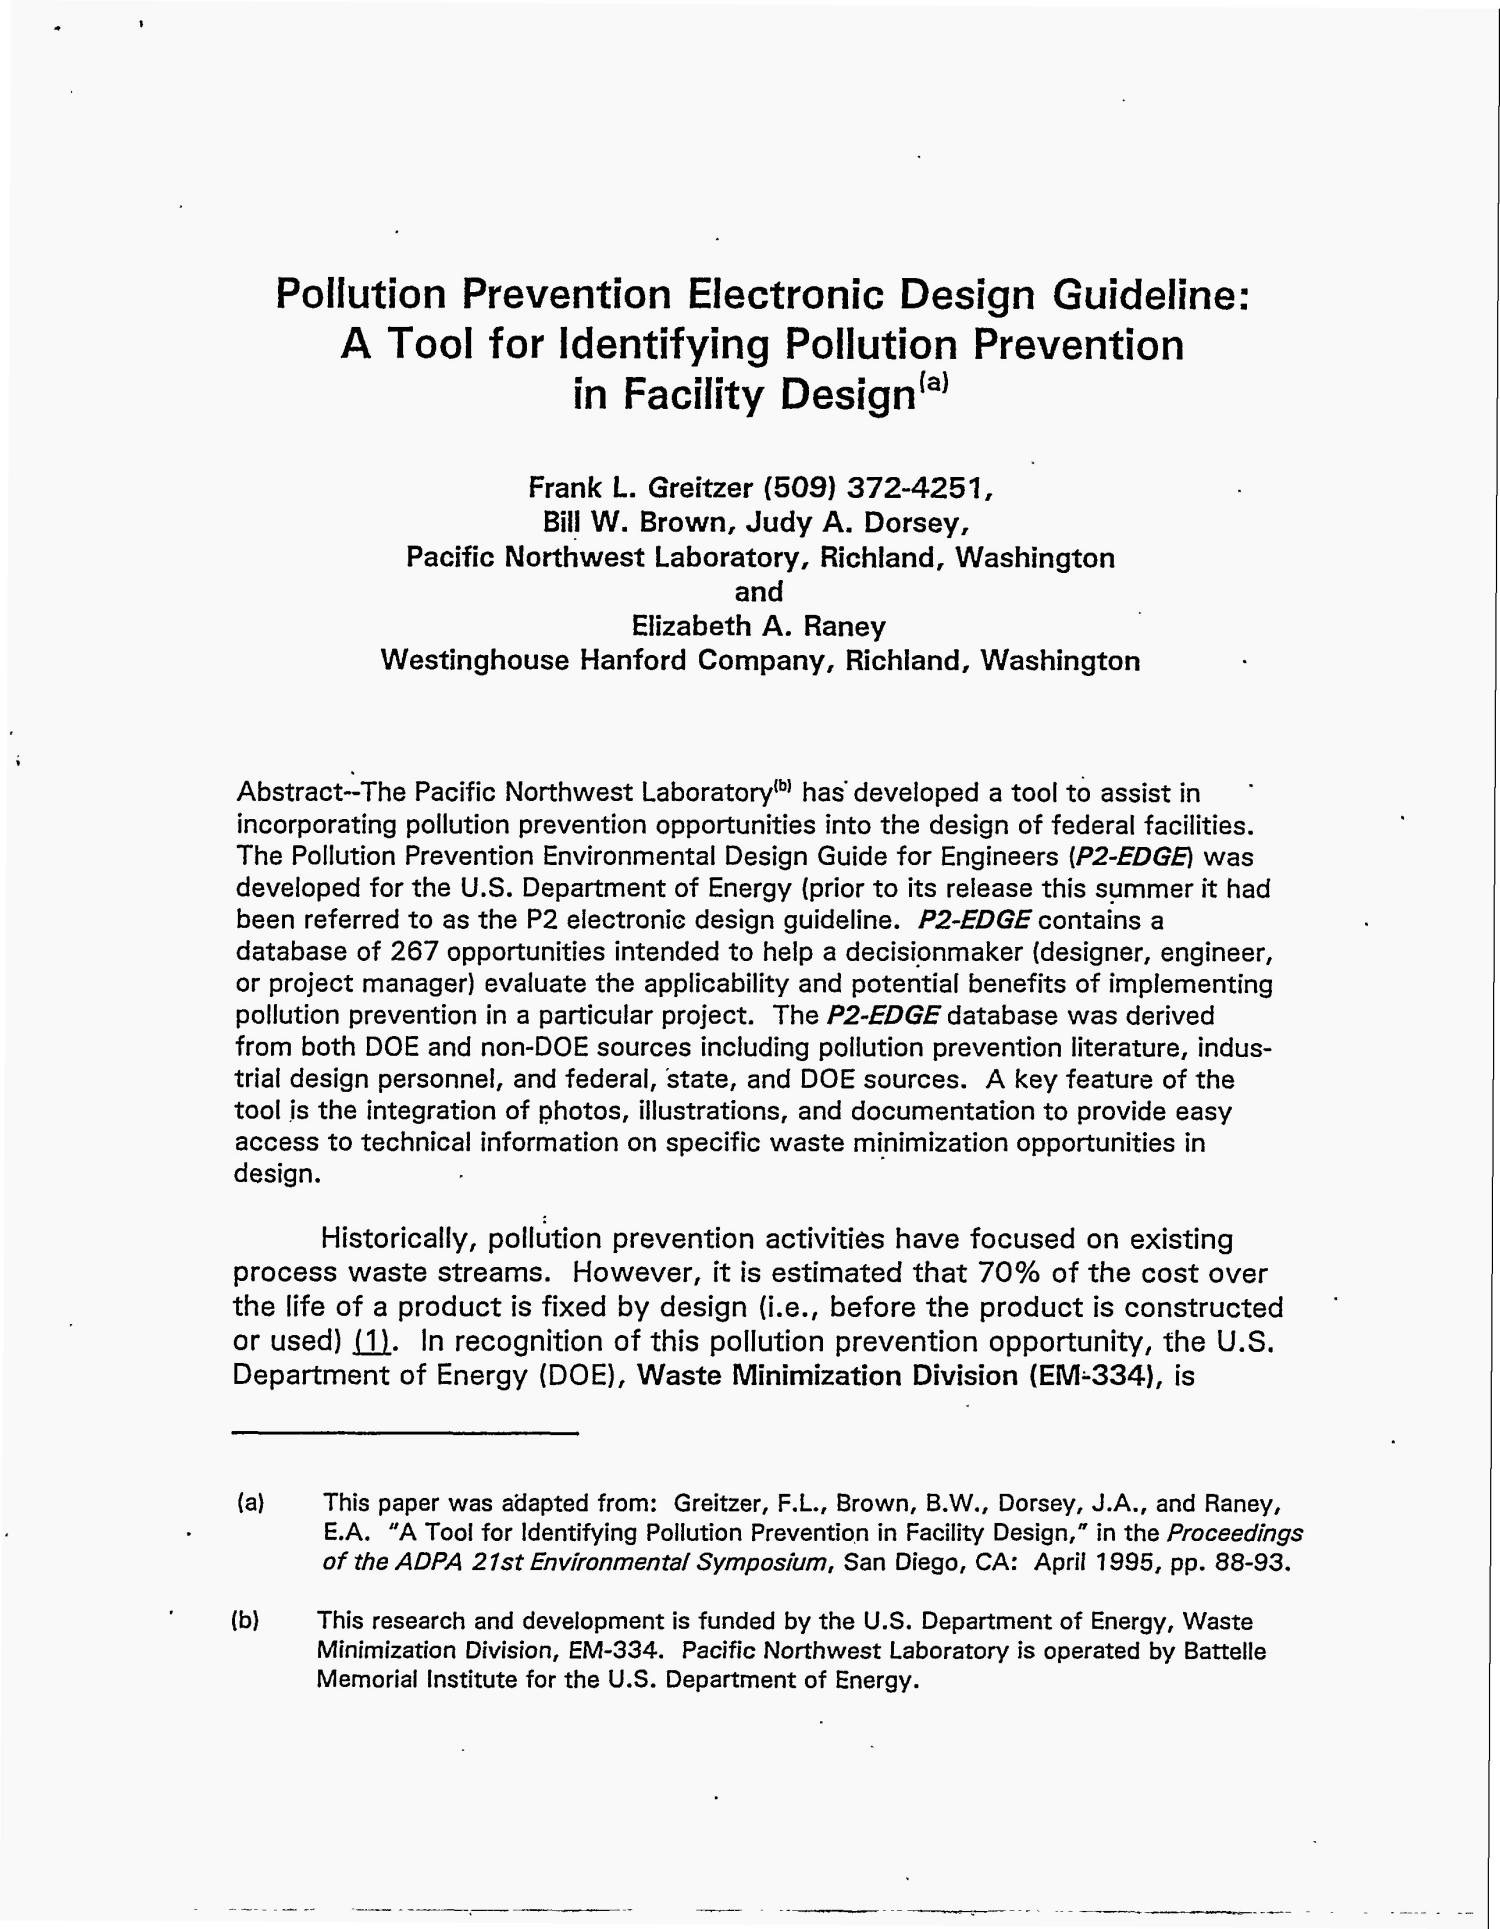 Pollution prevention electronic design guideline: A tool for identifying pollution prevention in facility design                                                                                                      [Sequence #]: 2 of 7